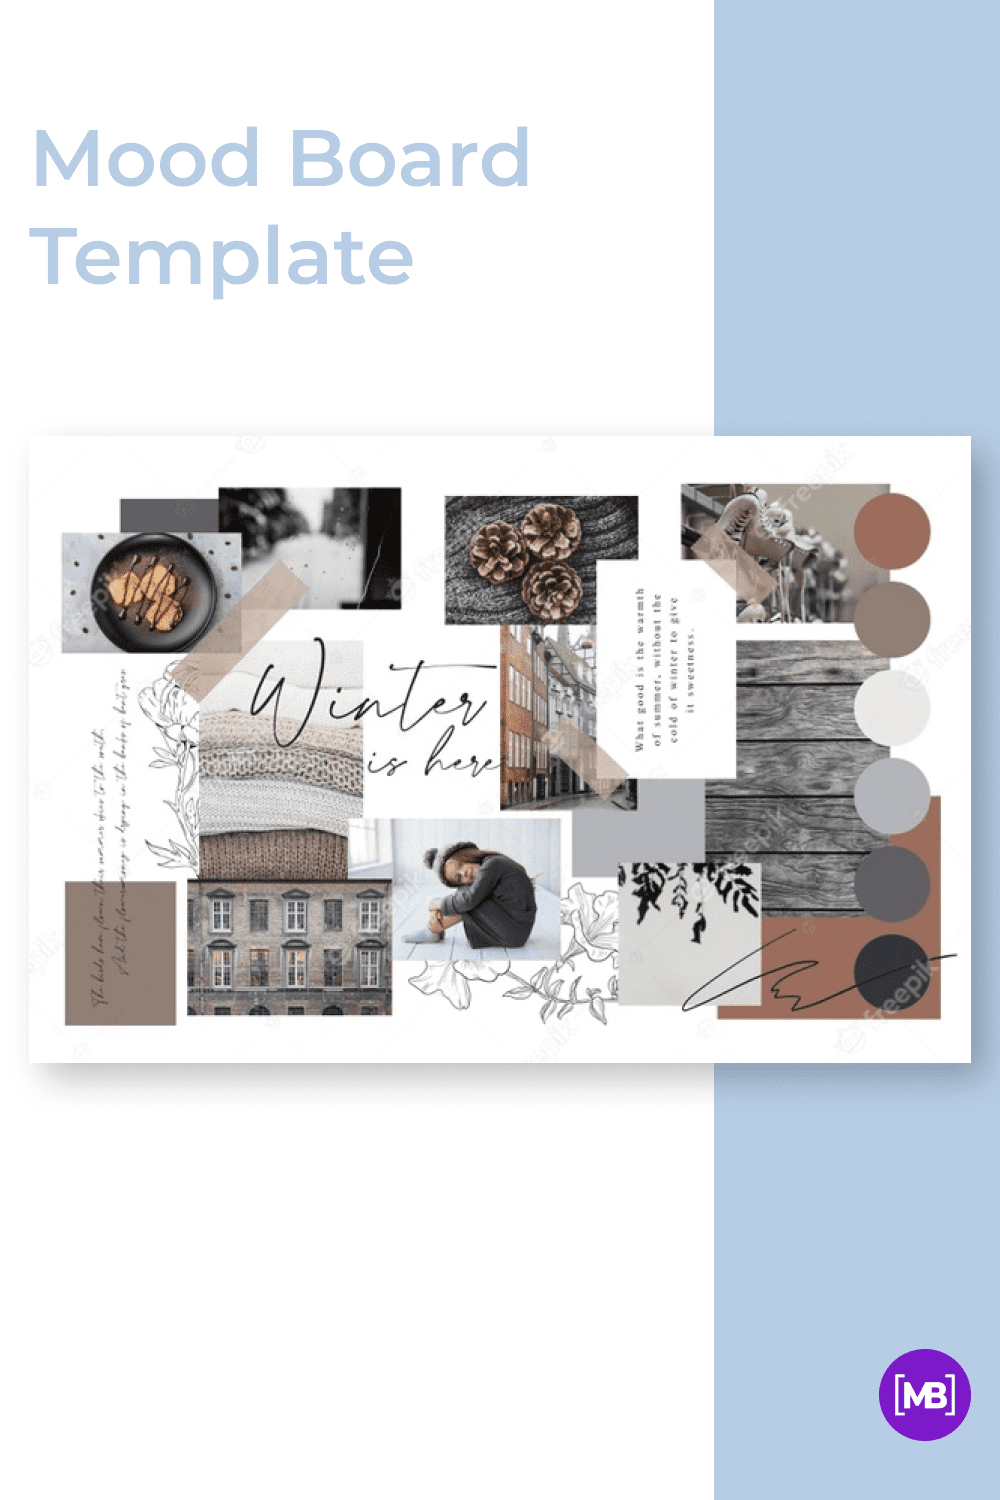 Close to the classic mood board, but with the addition of ornament on the background.